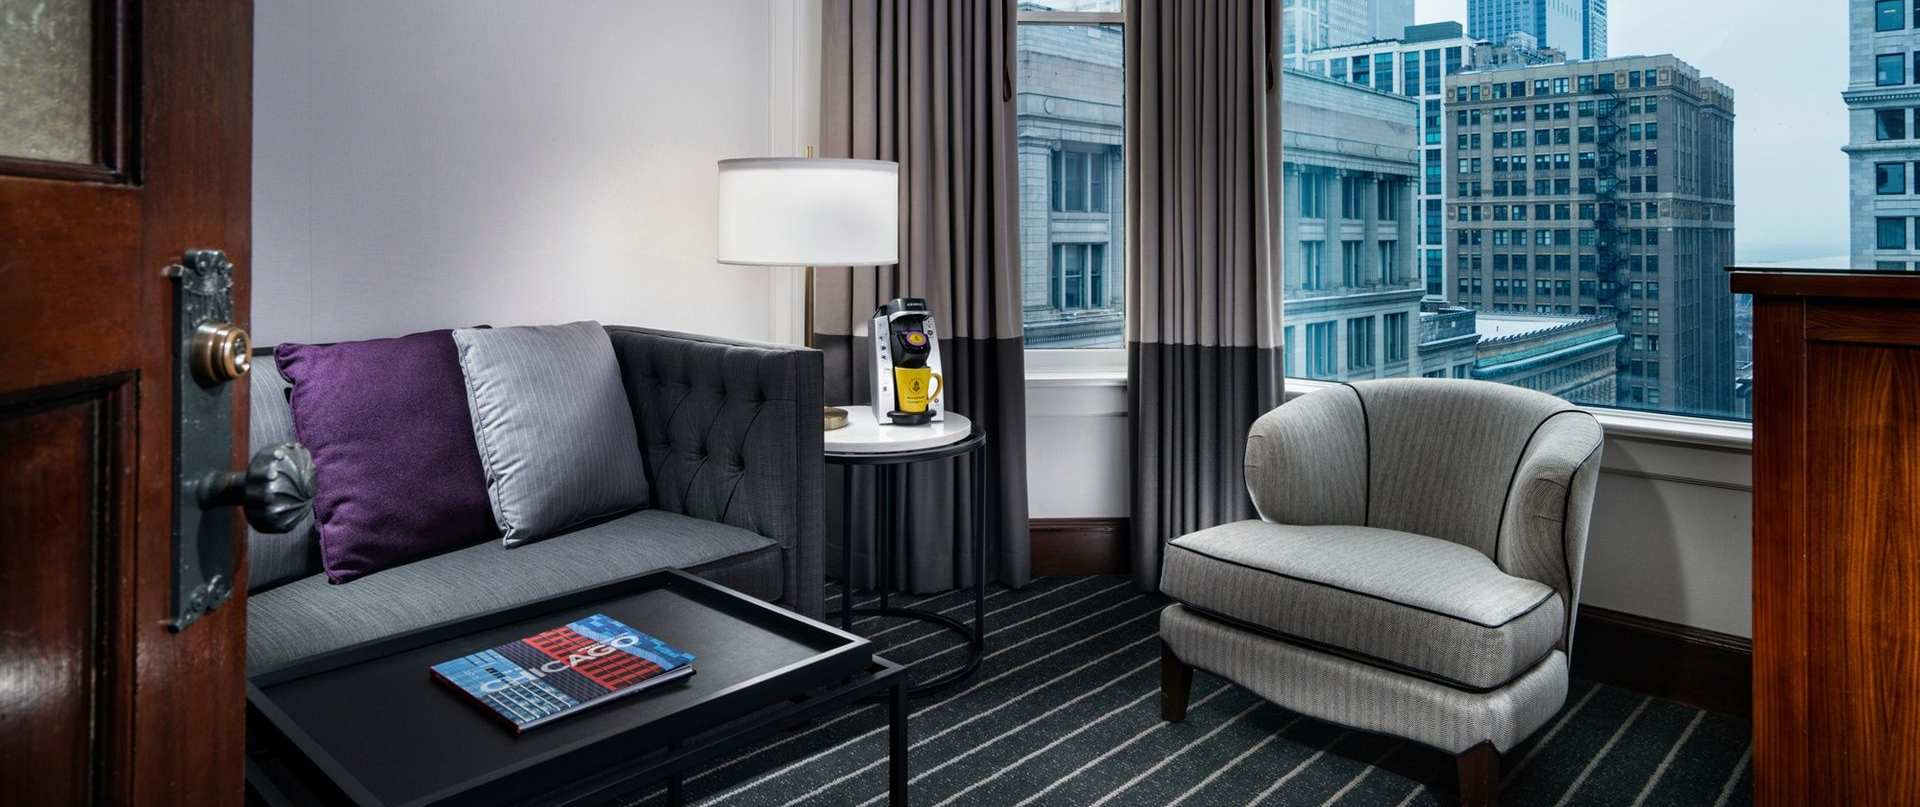 the-alise-chicago-1503-executive-king-suite-sitting-area.jpg